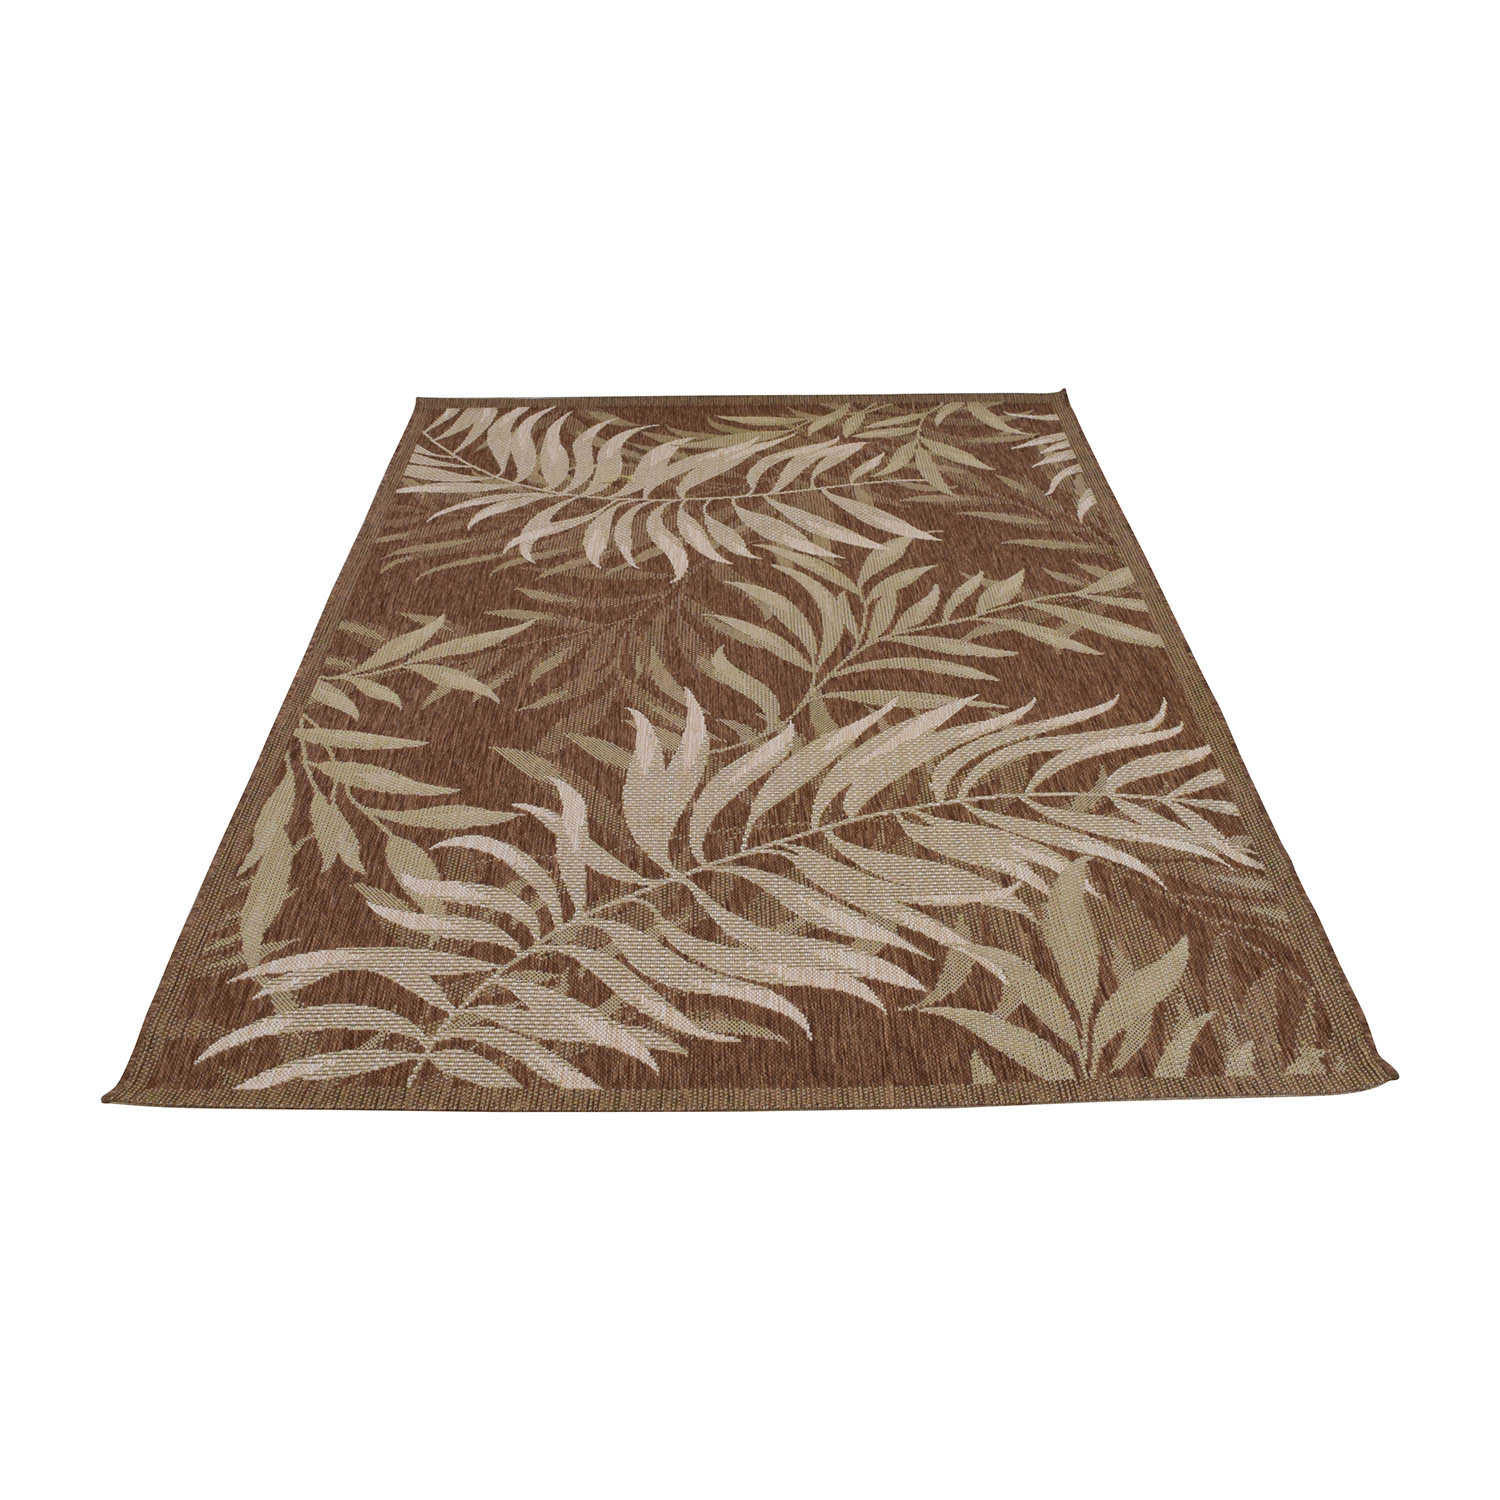 Balta Balta Palm Leaf Havanah Indoor Outdoor Rug Decor